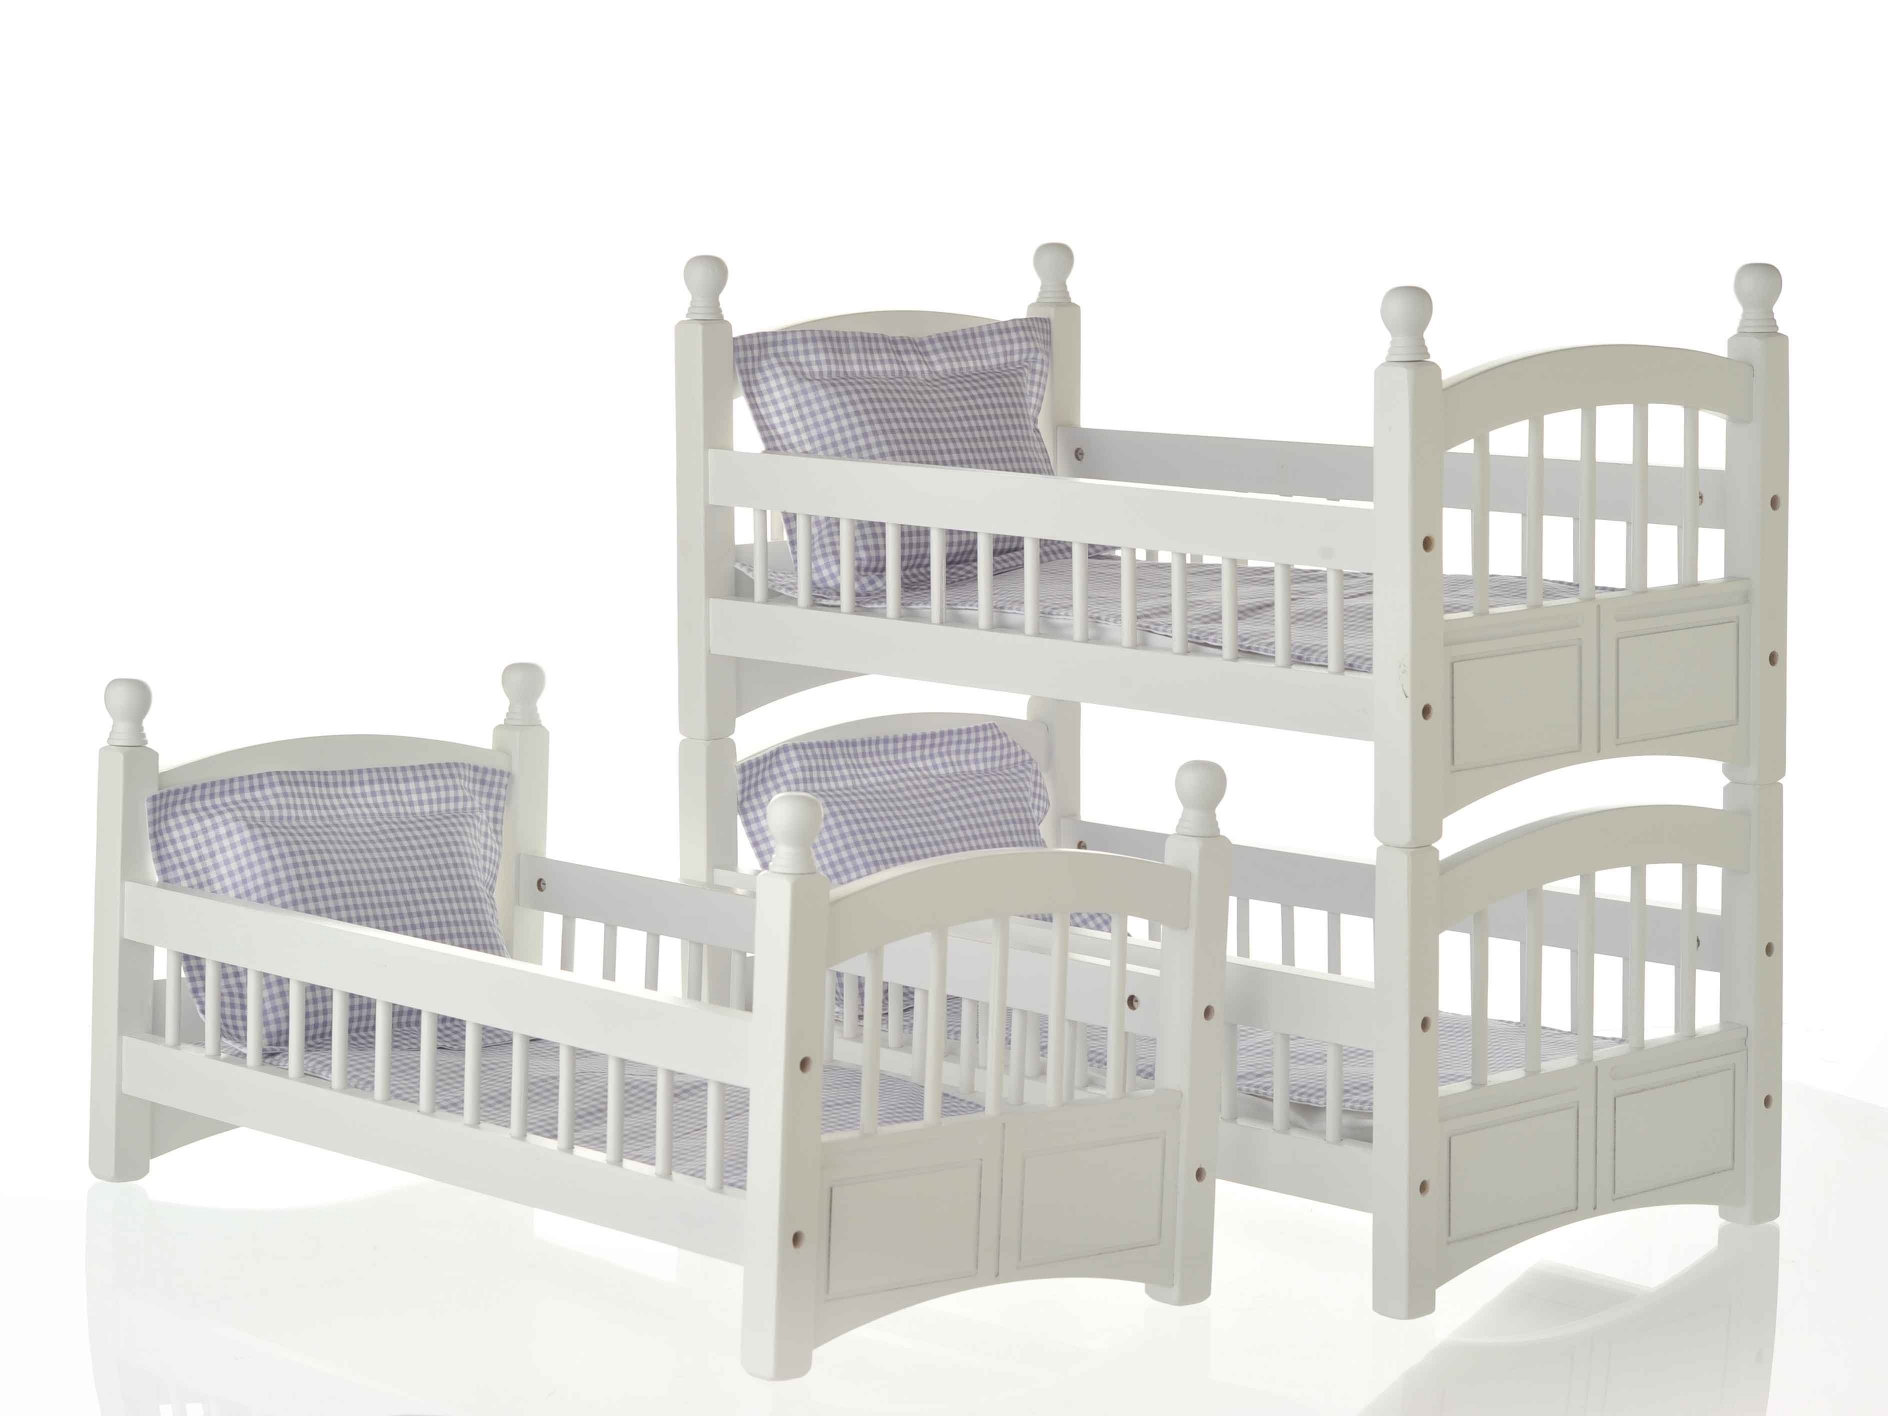 doll reborn inch walmart tikes cribs high target at strollr crib little dolls bed bedding chair playpen baby wooden badger beds